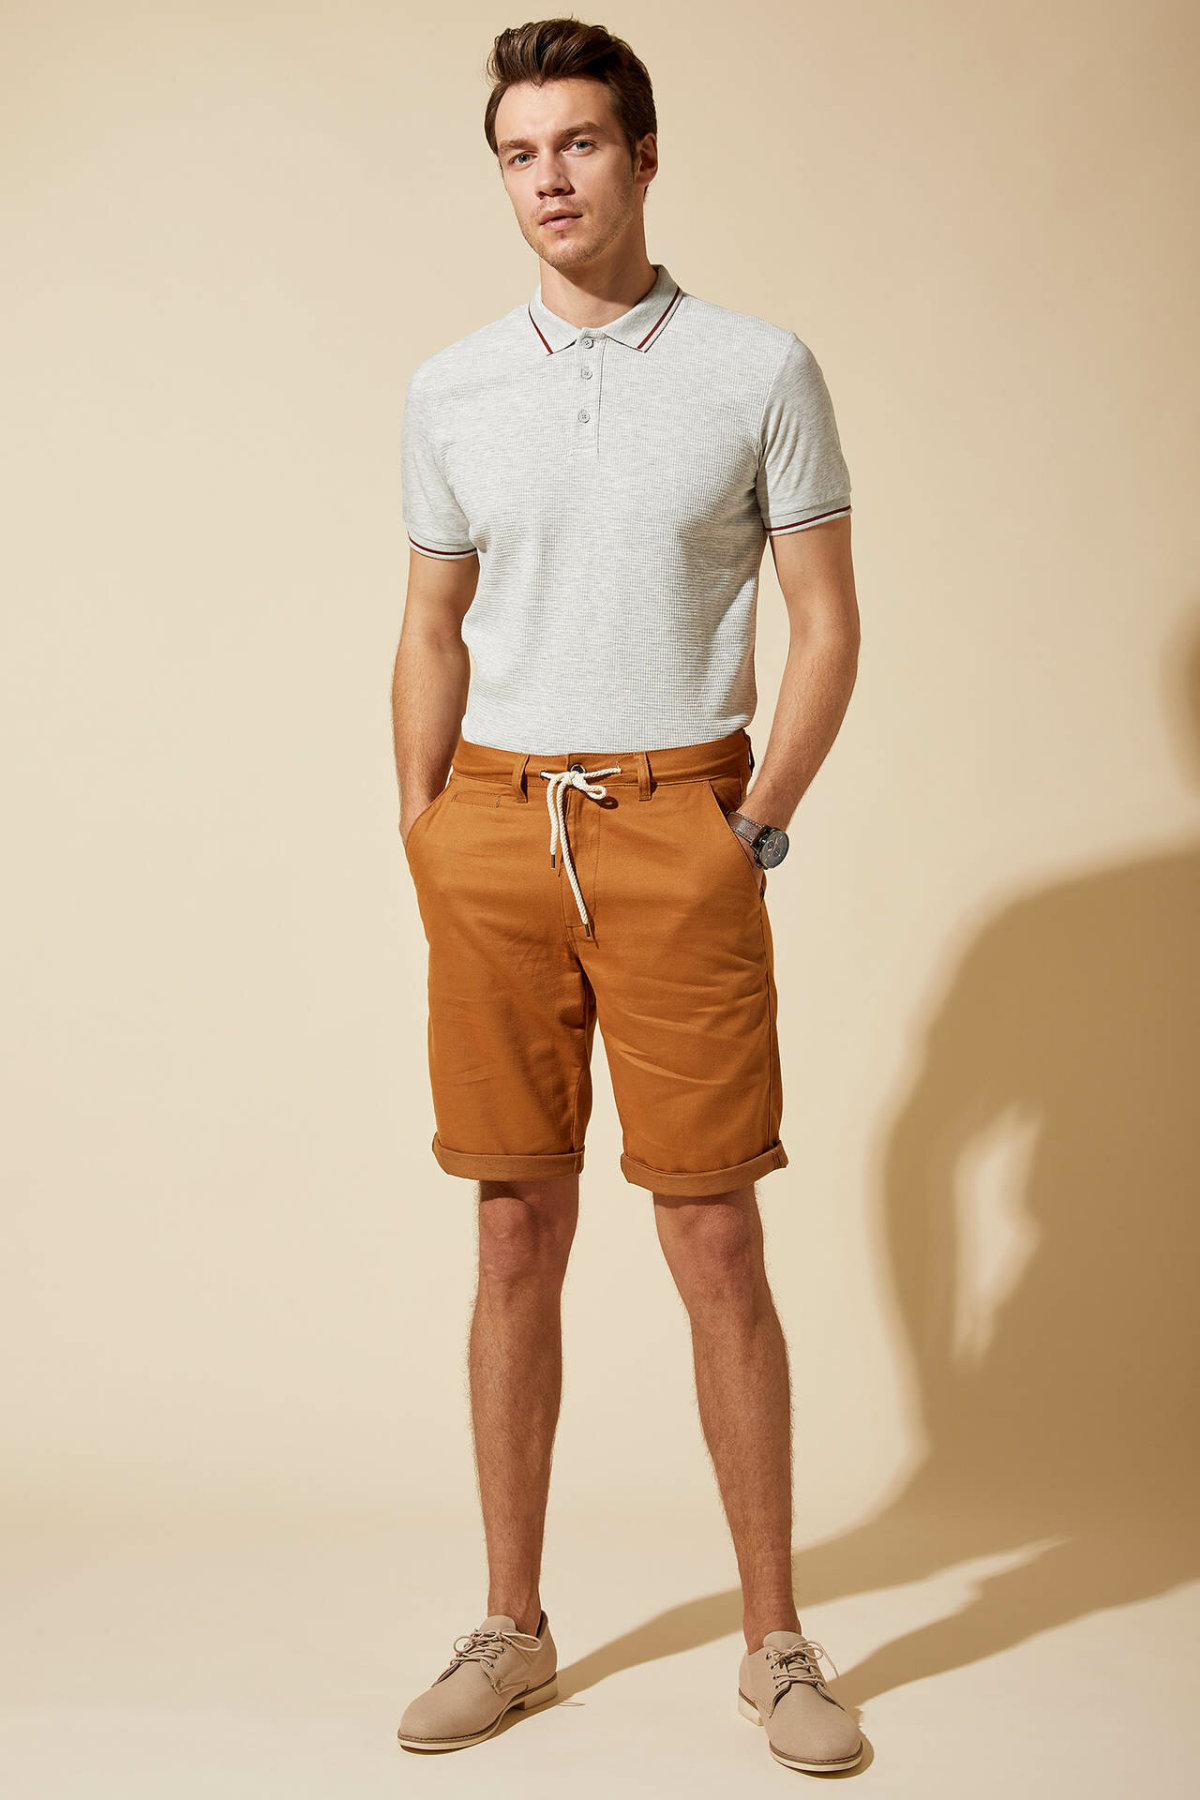 DeFacto Man Summer Stylish Short Bottoms Men Casual Bottoms Shorts Male Lace-up Loose Bermuda Shorts-L5727AZ19SM